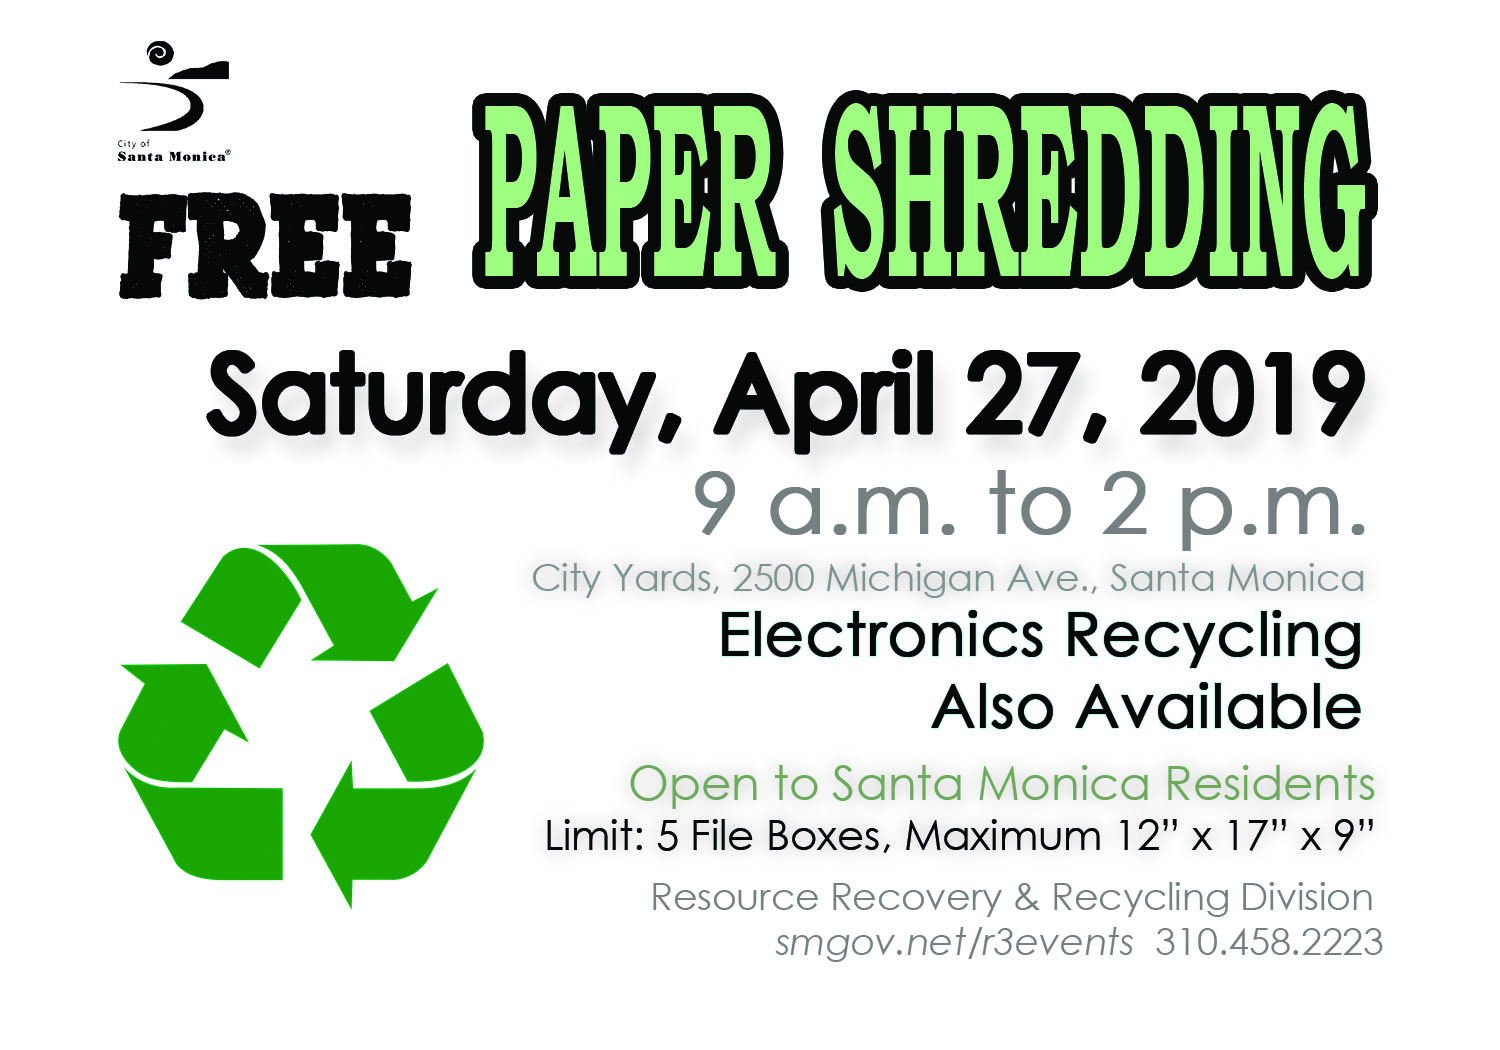 Paper Shredding April 27